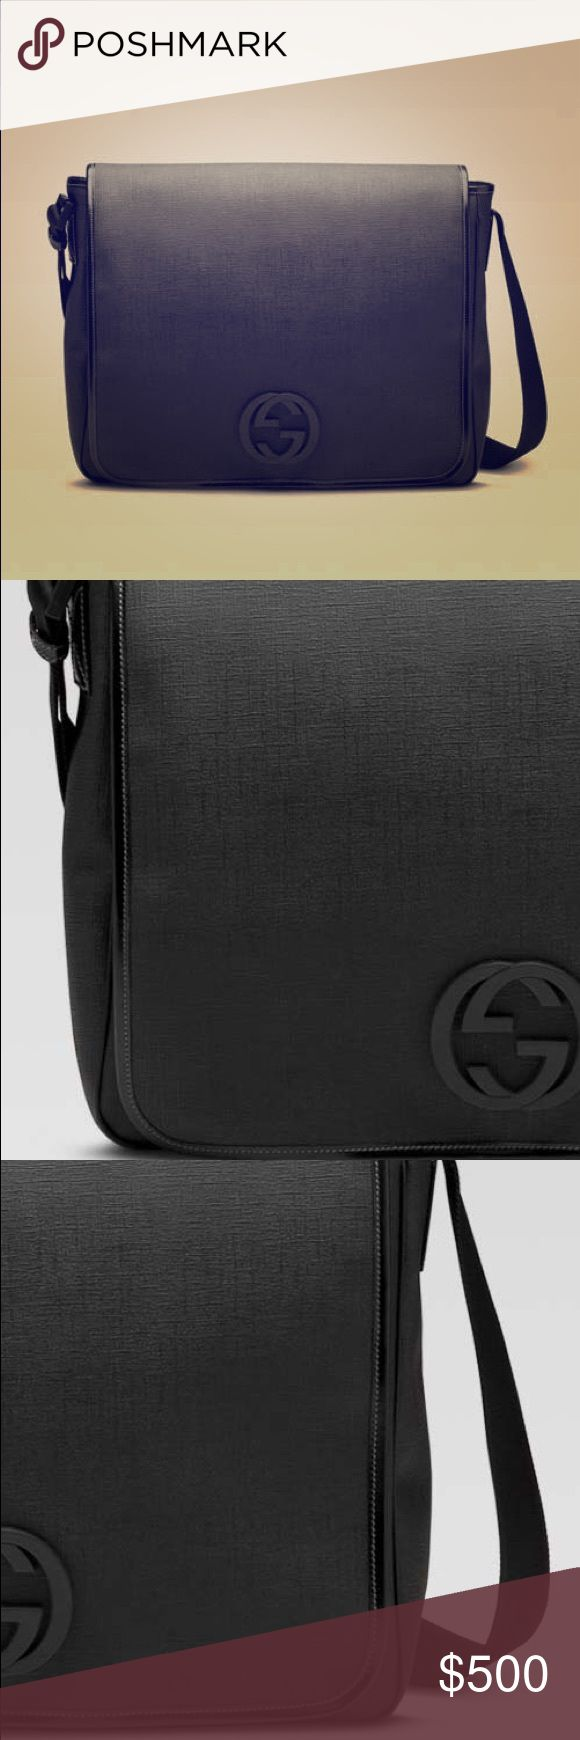 UNISEX Gucci Large Messenger Bag UNISEX Gucci large messenger bag with interlocking G detail black coated fabric with black leather trim adjustable shoulder strap black hardware pen and business card holders flap closure with magnetic snap back pocket with hook-and-loop closure and inside zip and cell phone pockets Gucci Bags Messenger Bags